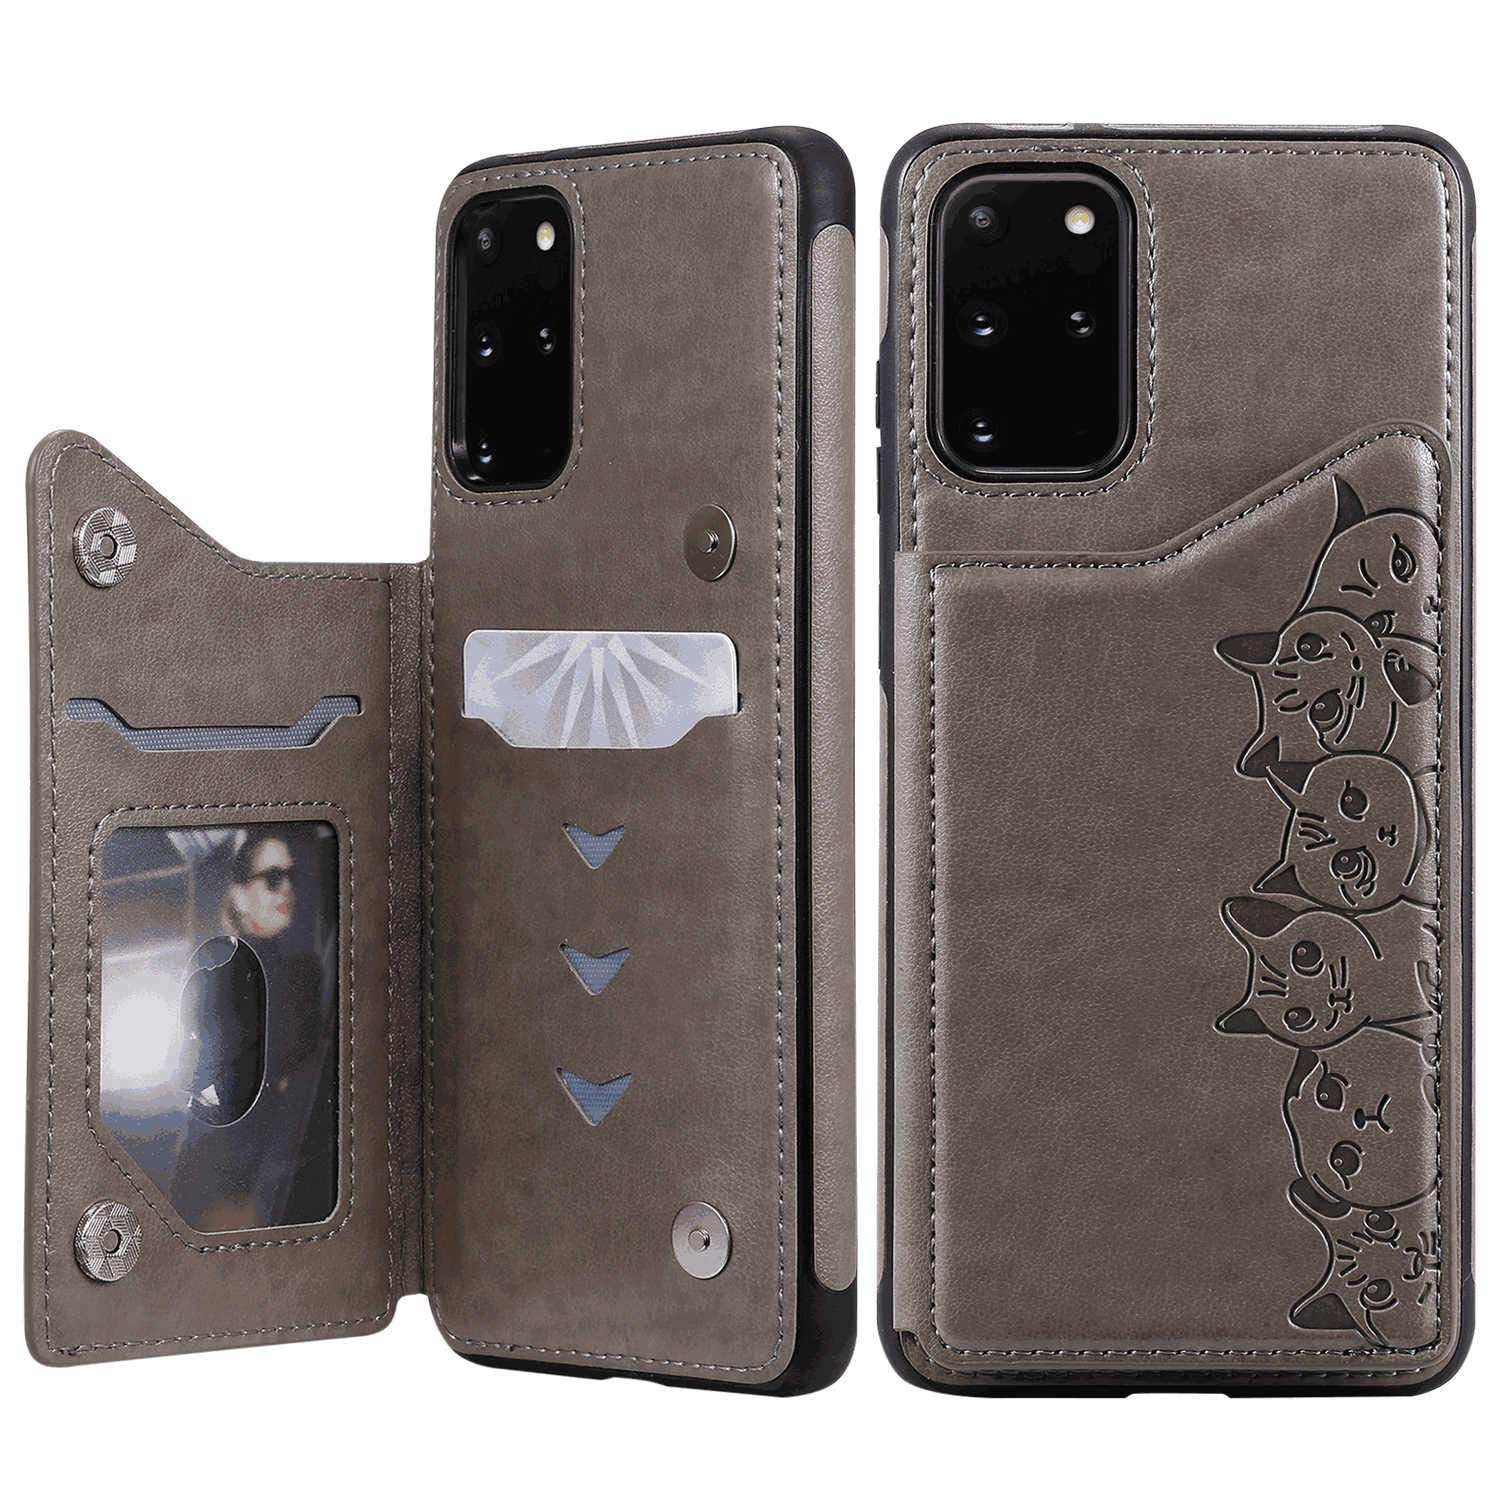 Positive Cover Compatible with iPhone 11, gray PU Leather Wallet Flip Case for iPhone 11